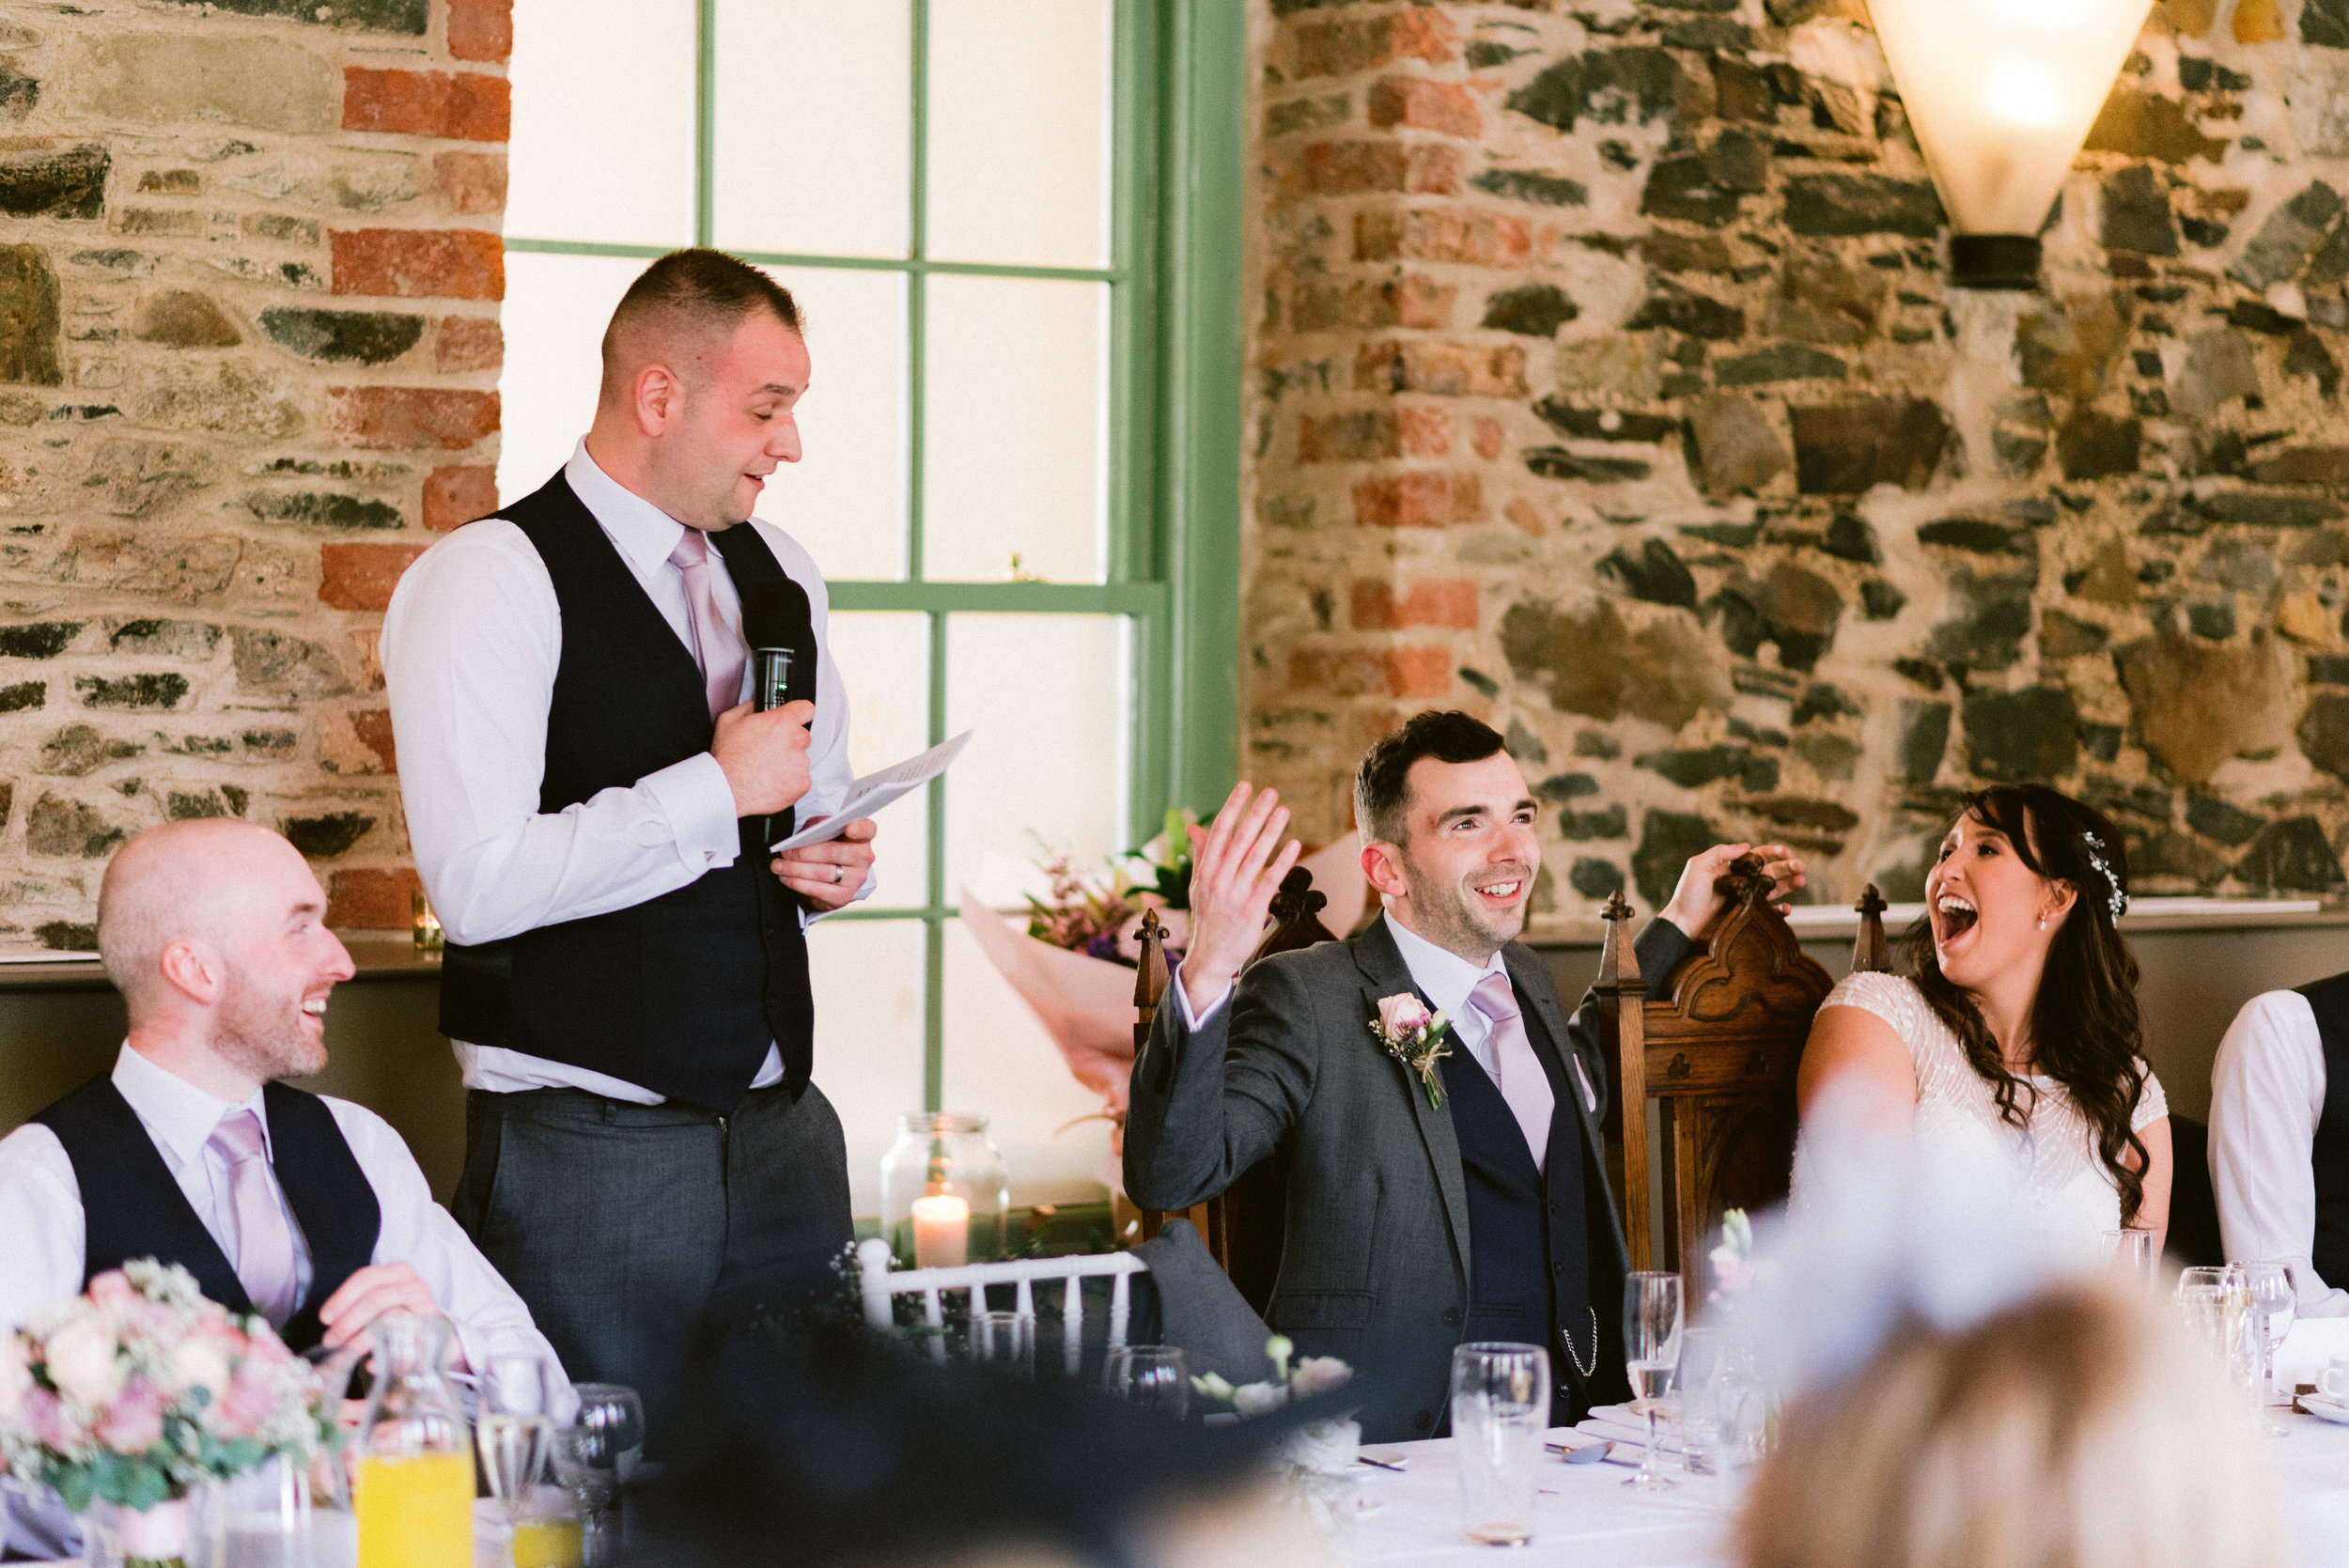 orange tree wedding, barn wedding venue northern ireland, rustic wedding venues NI, bright wedding venues northern ireland, greyabbey wedding venue, wedding speeches, first dance (8).jpg